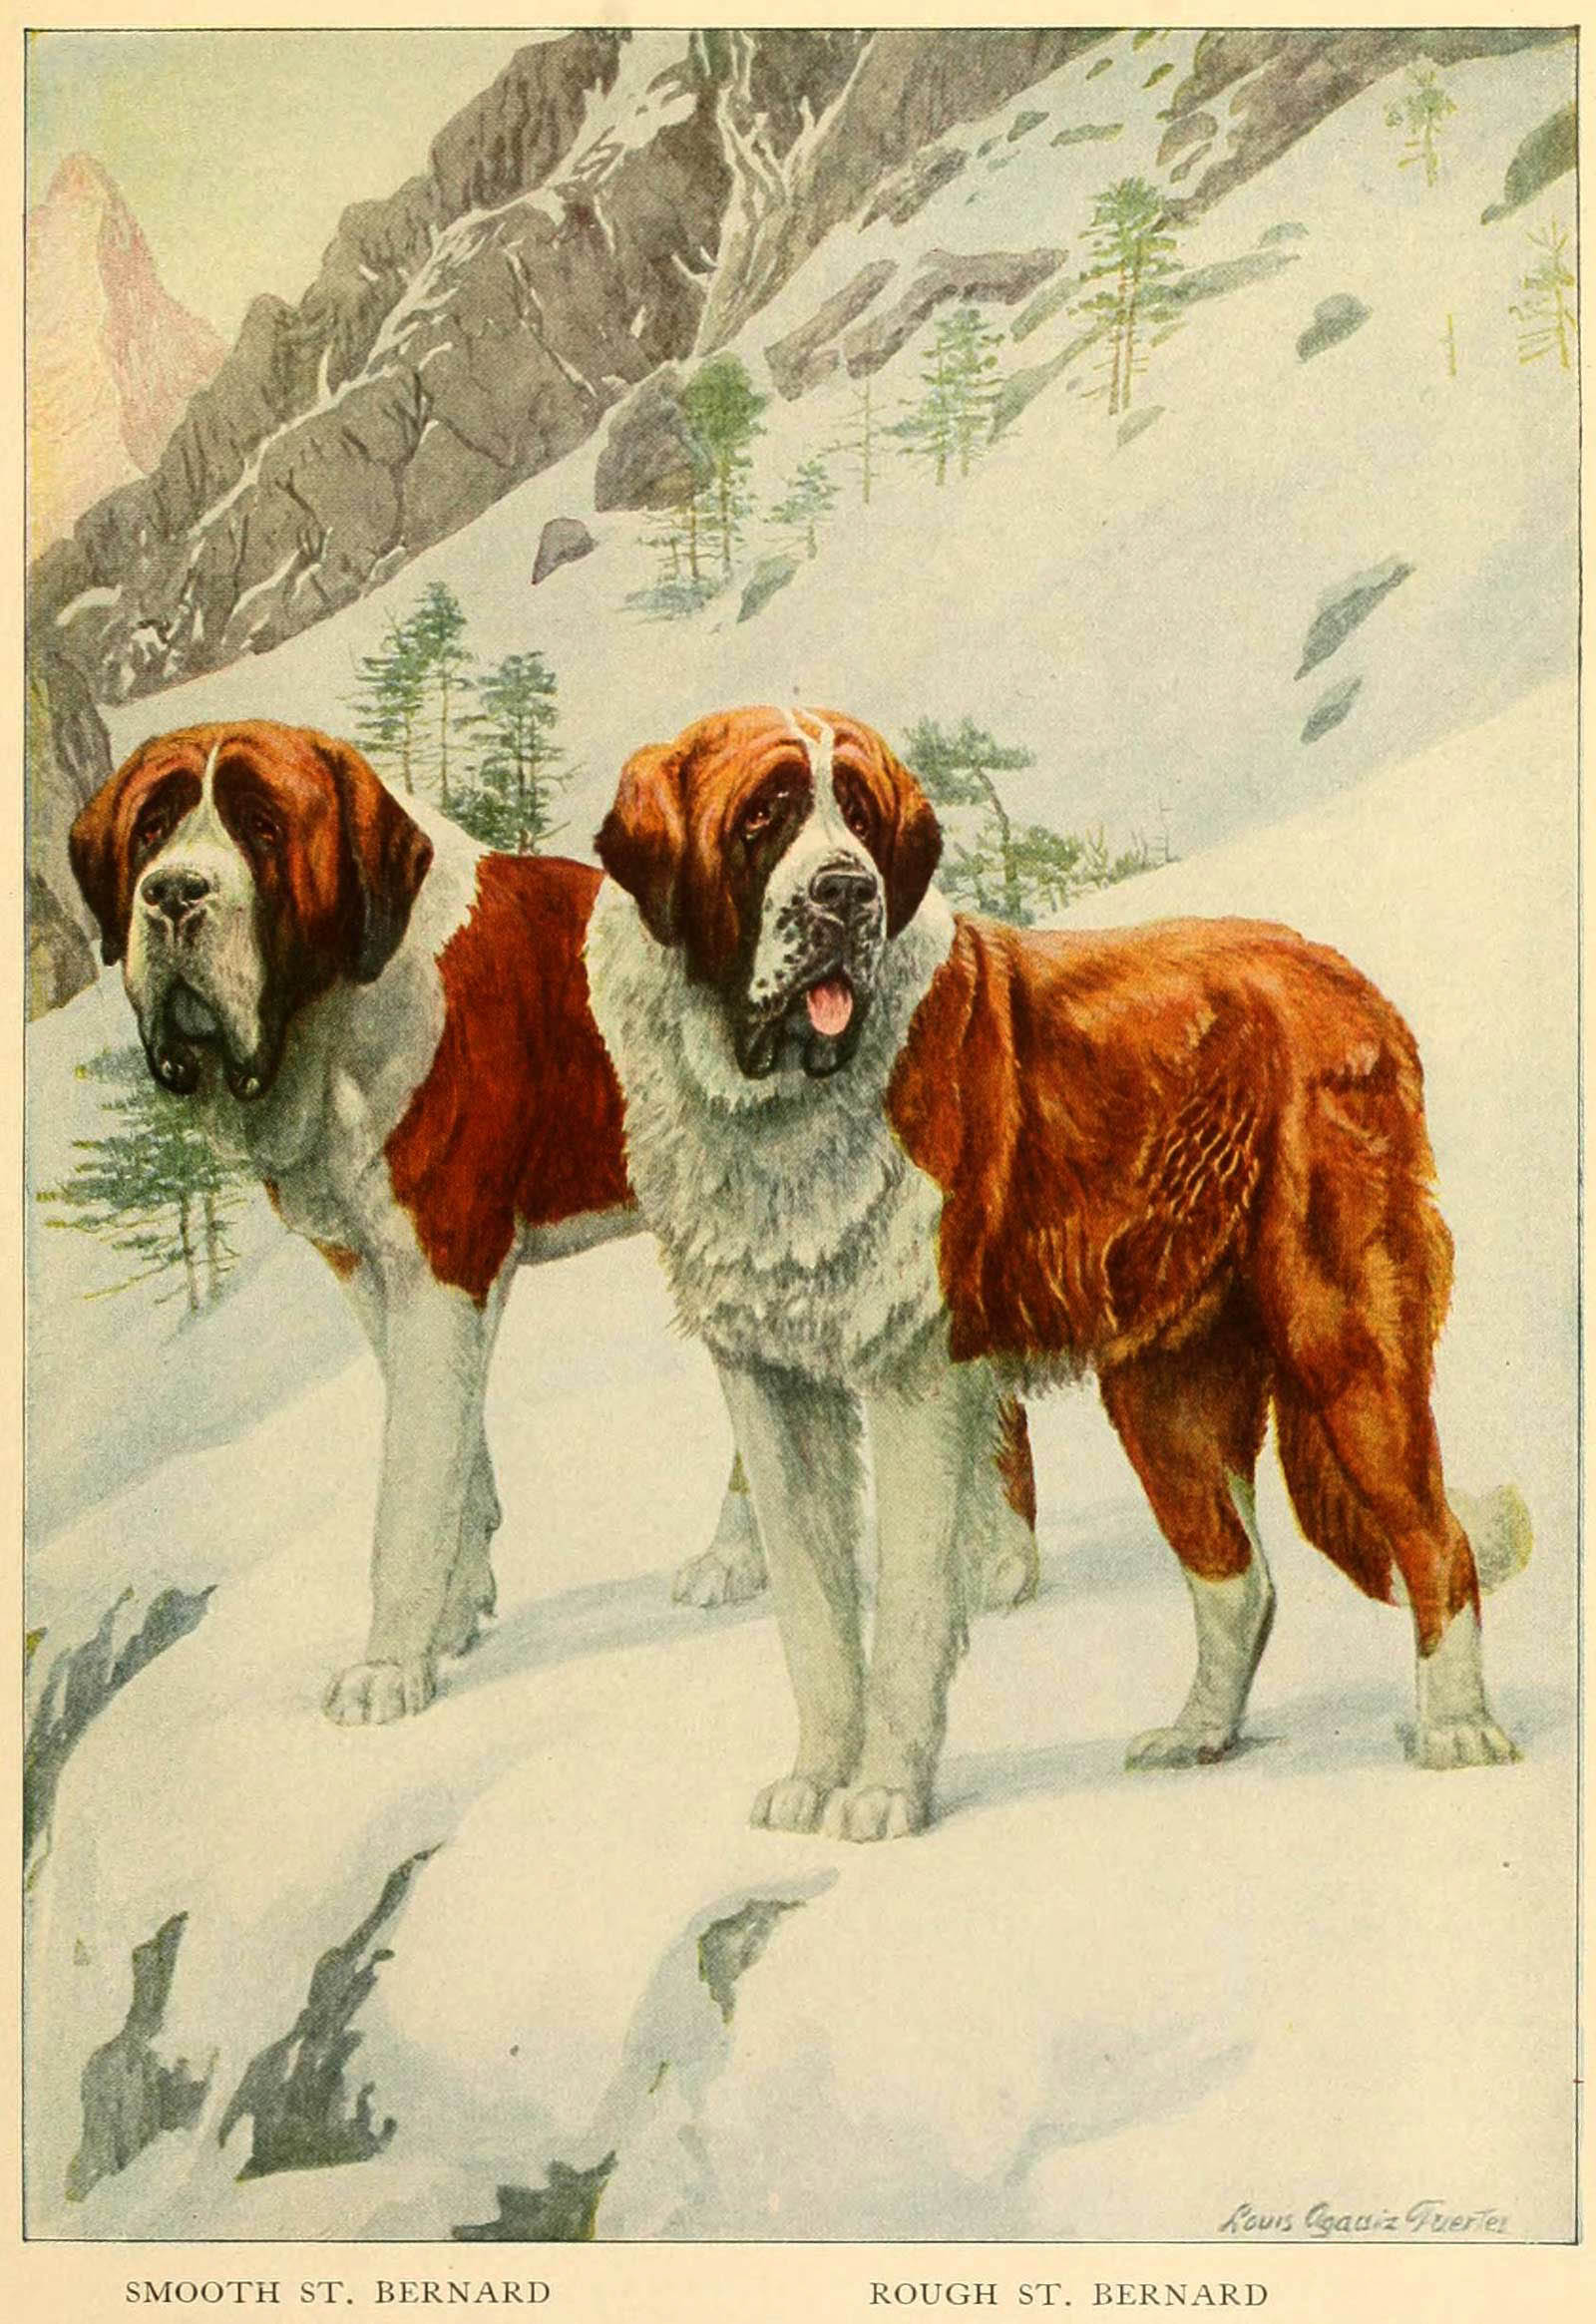 ST. BERNARD DOG BREED – Information About Dogs